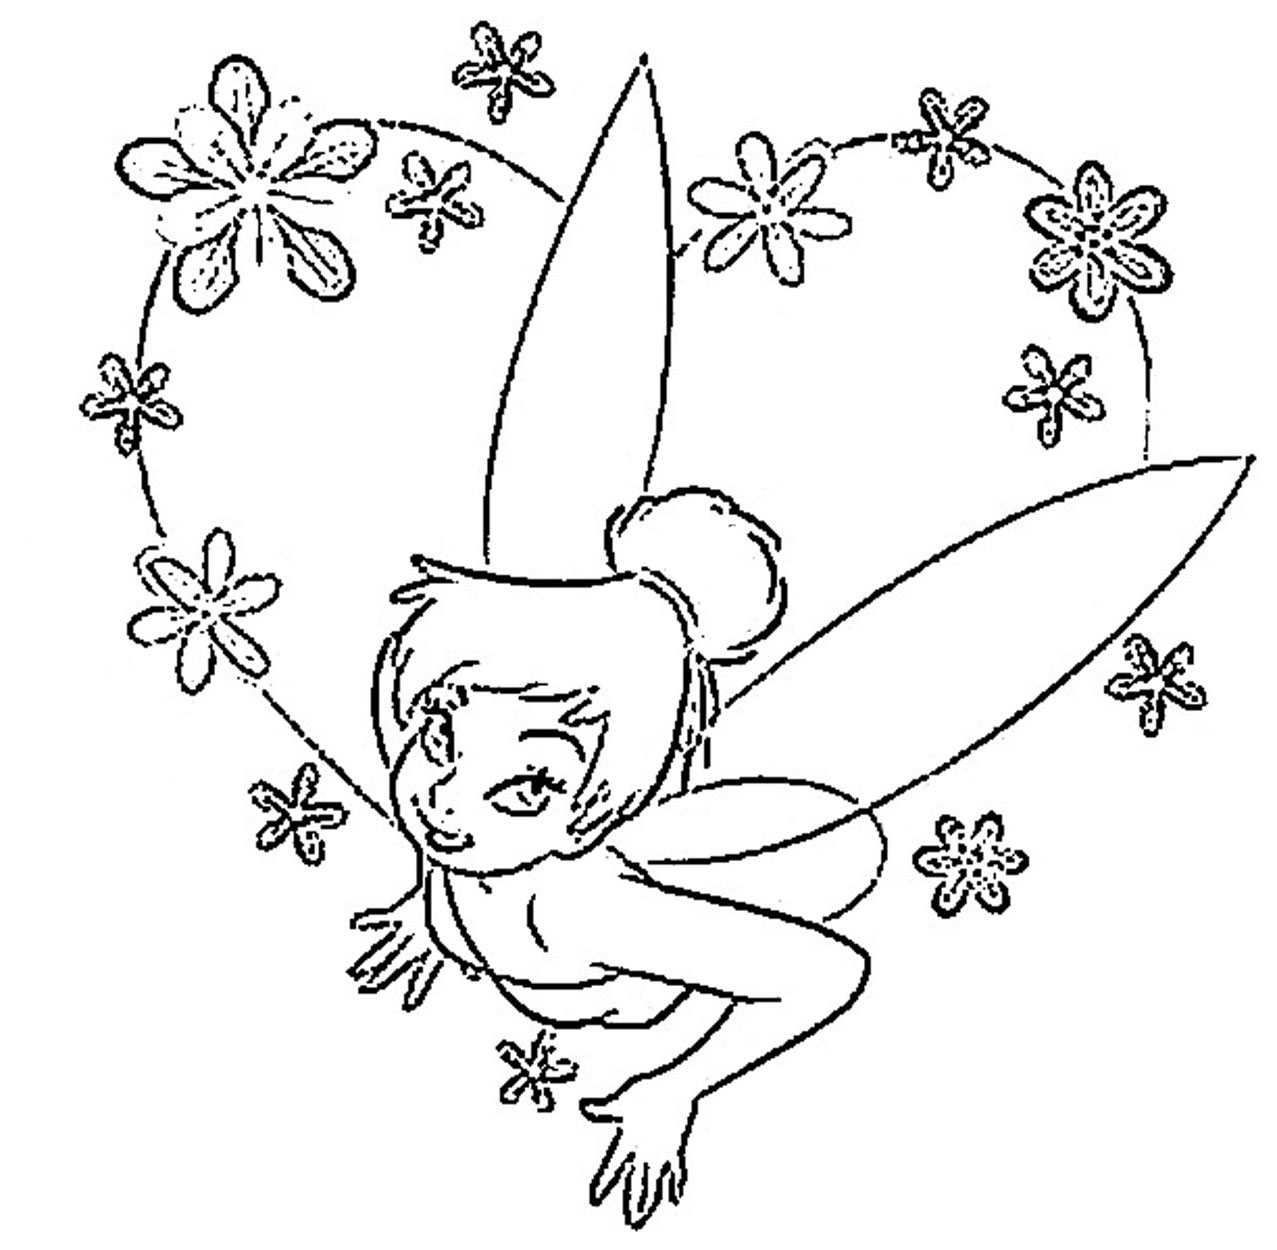 Tinker bell coloring pages to download